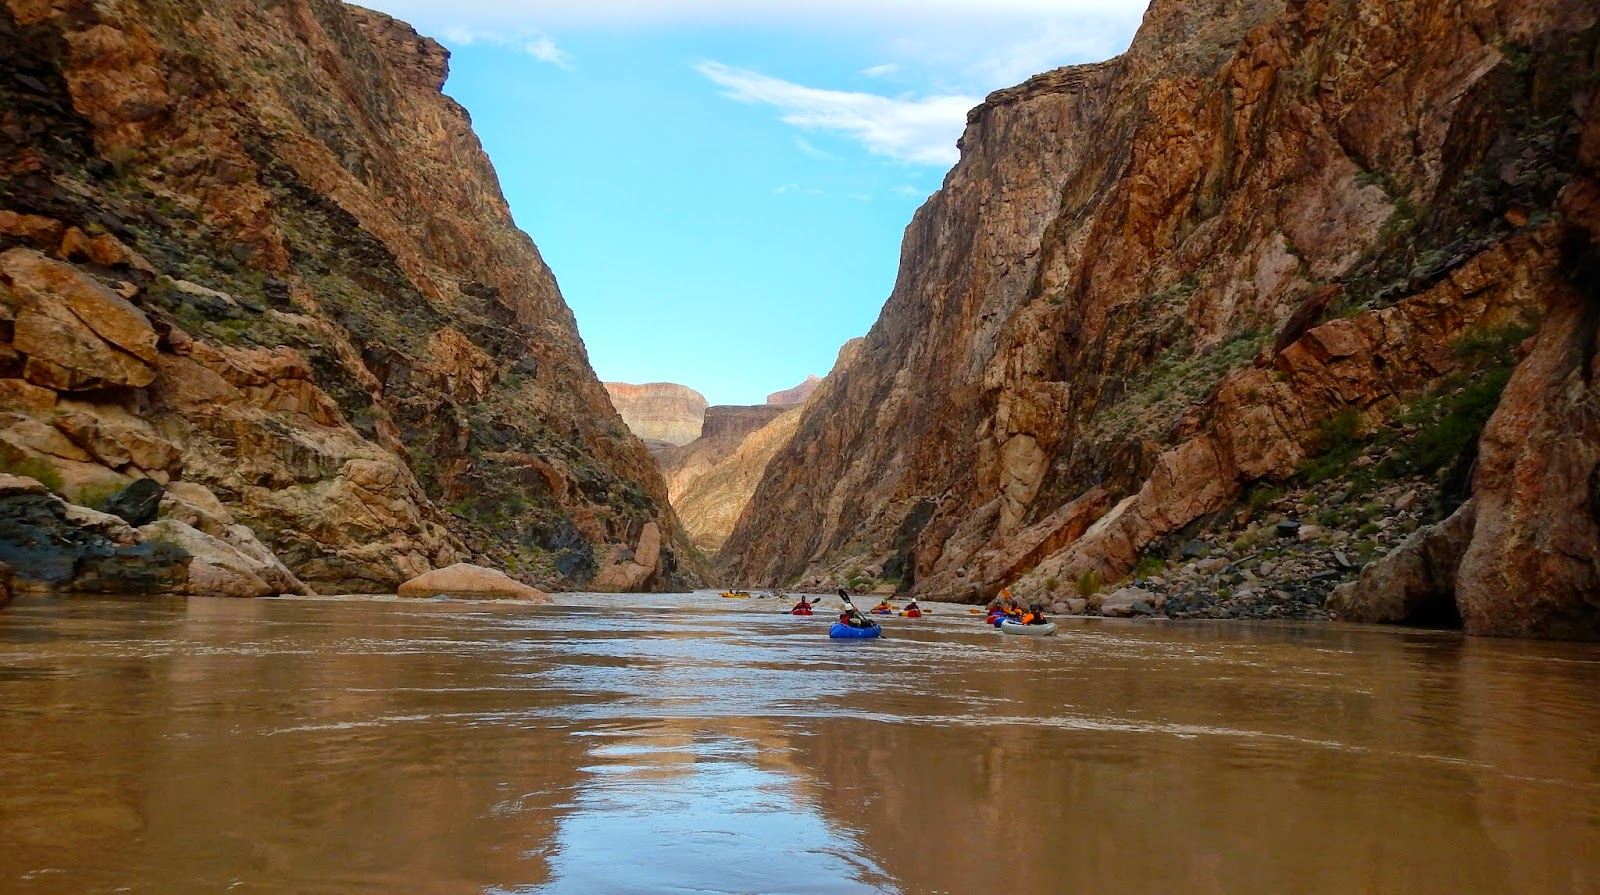 Forrest McCarthy: Grand Canyon of the Colorado River